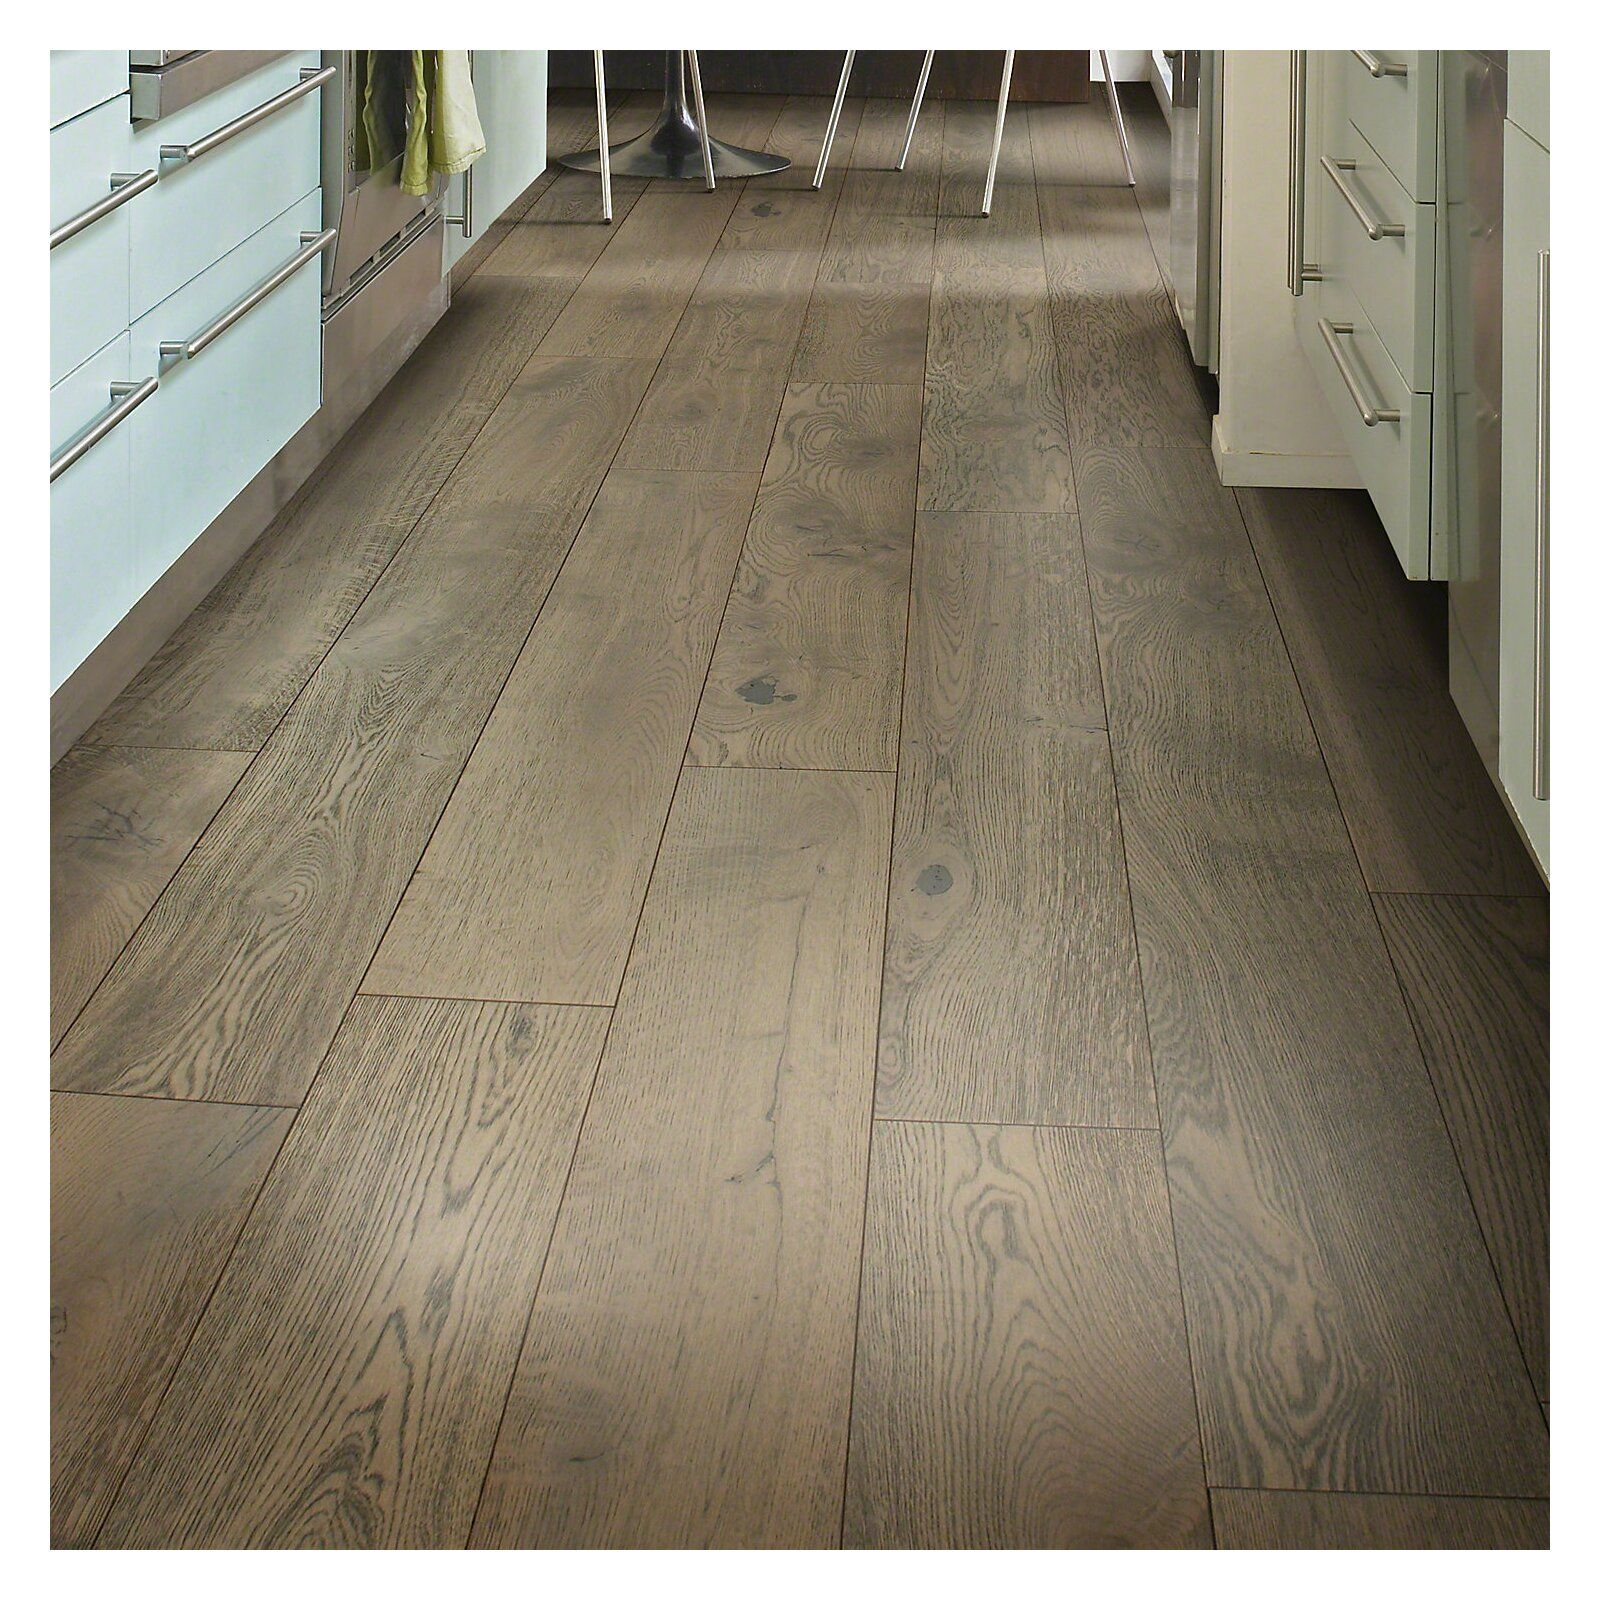 Shaw Floors Scottsmoor Oak 9 16 Thick X 7 1 2 Wide Engineered Hardwood Flooring Wayfair Wood Floors Wide Plank Engineered Hardwood Flooring Engineered Hardwood